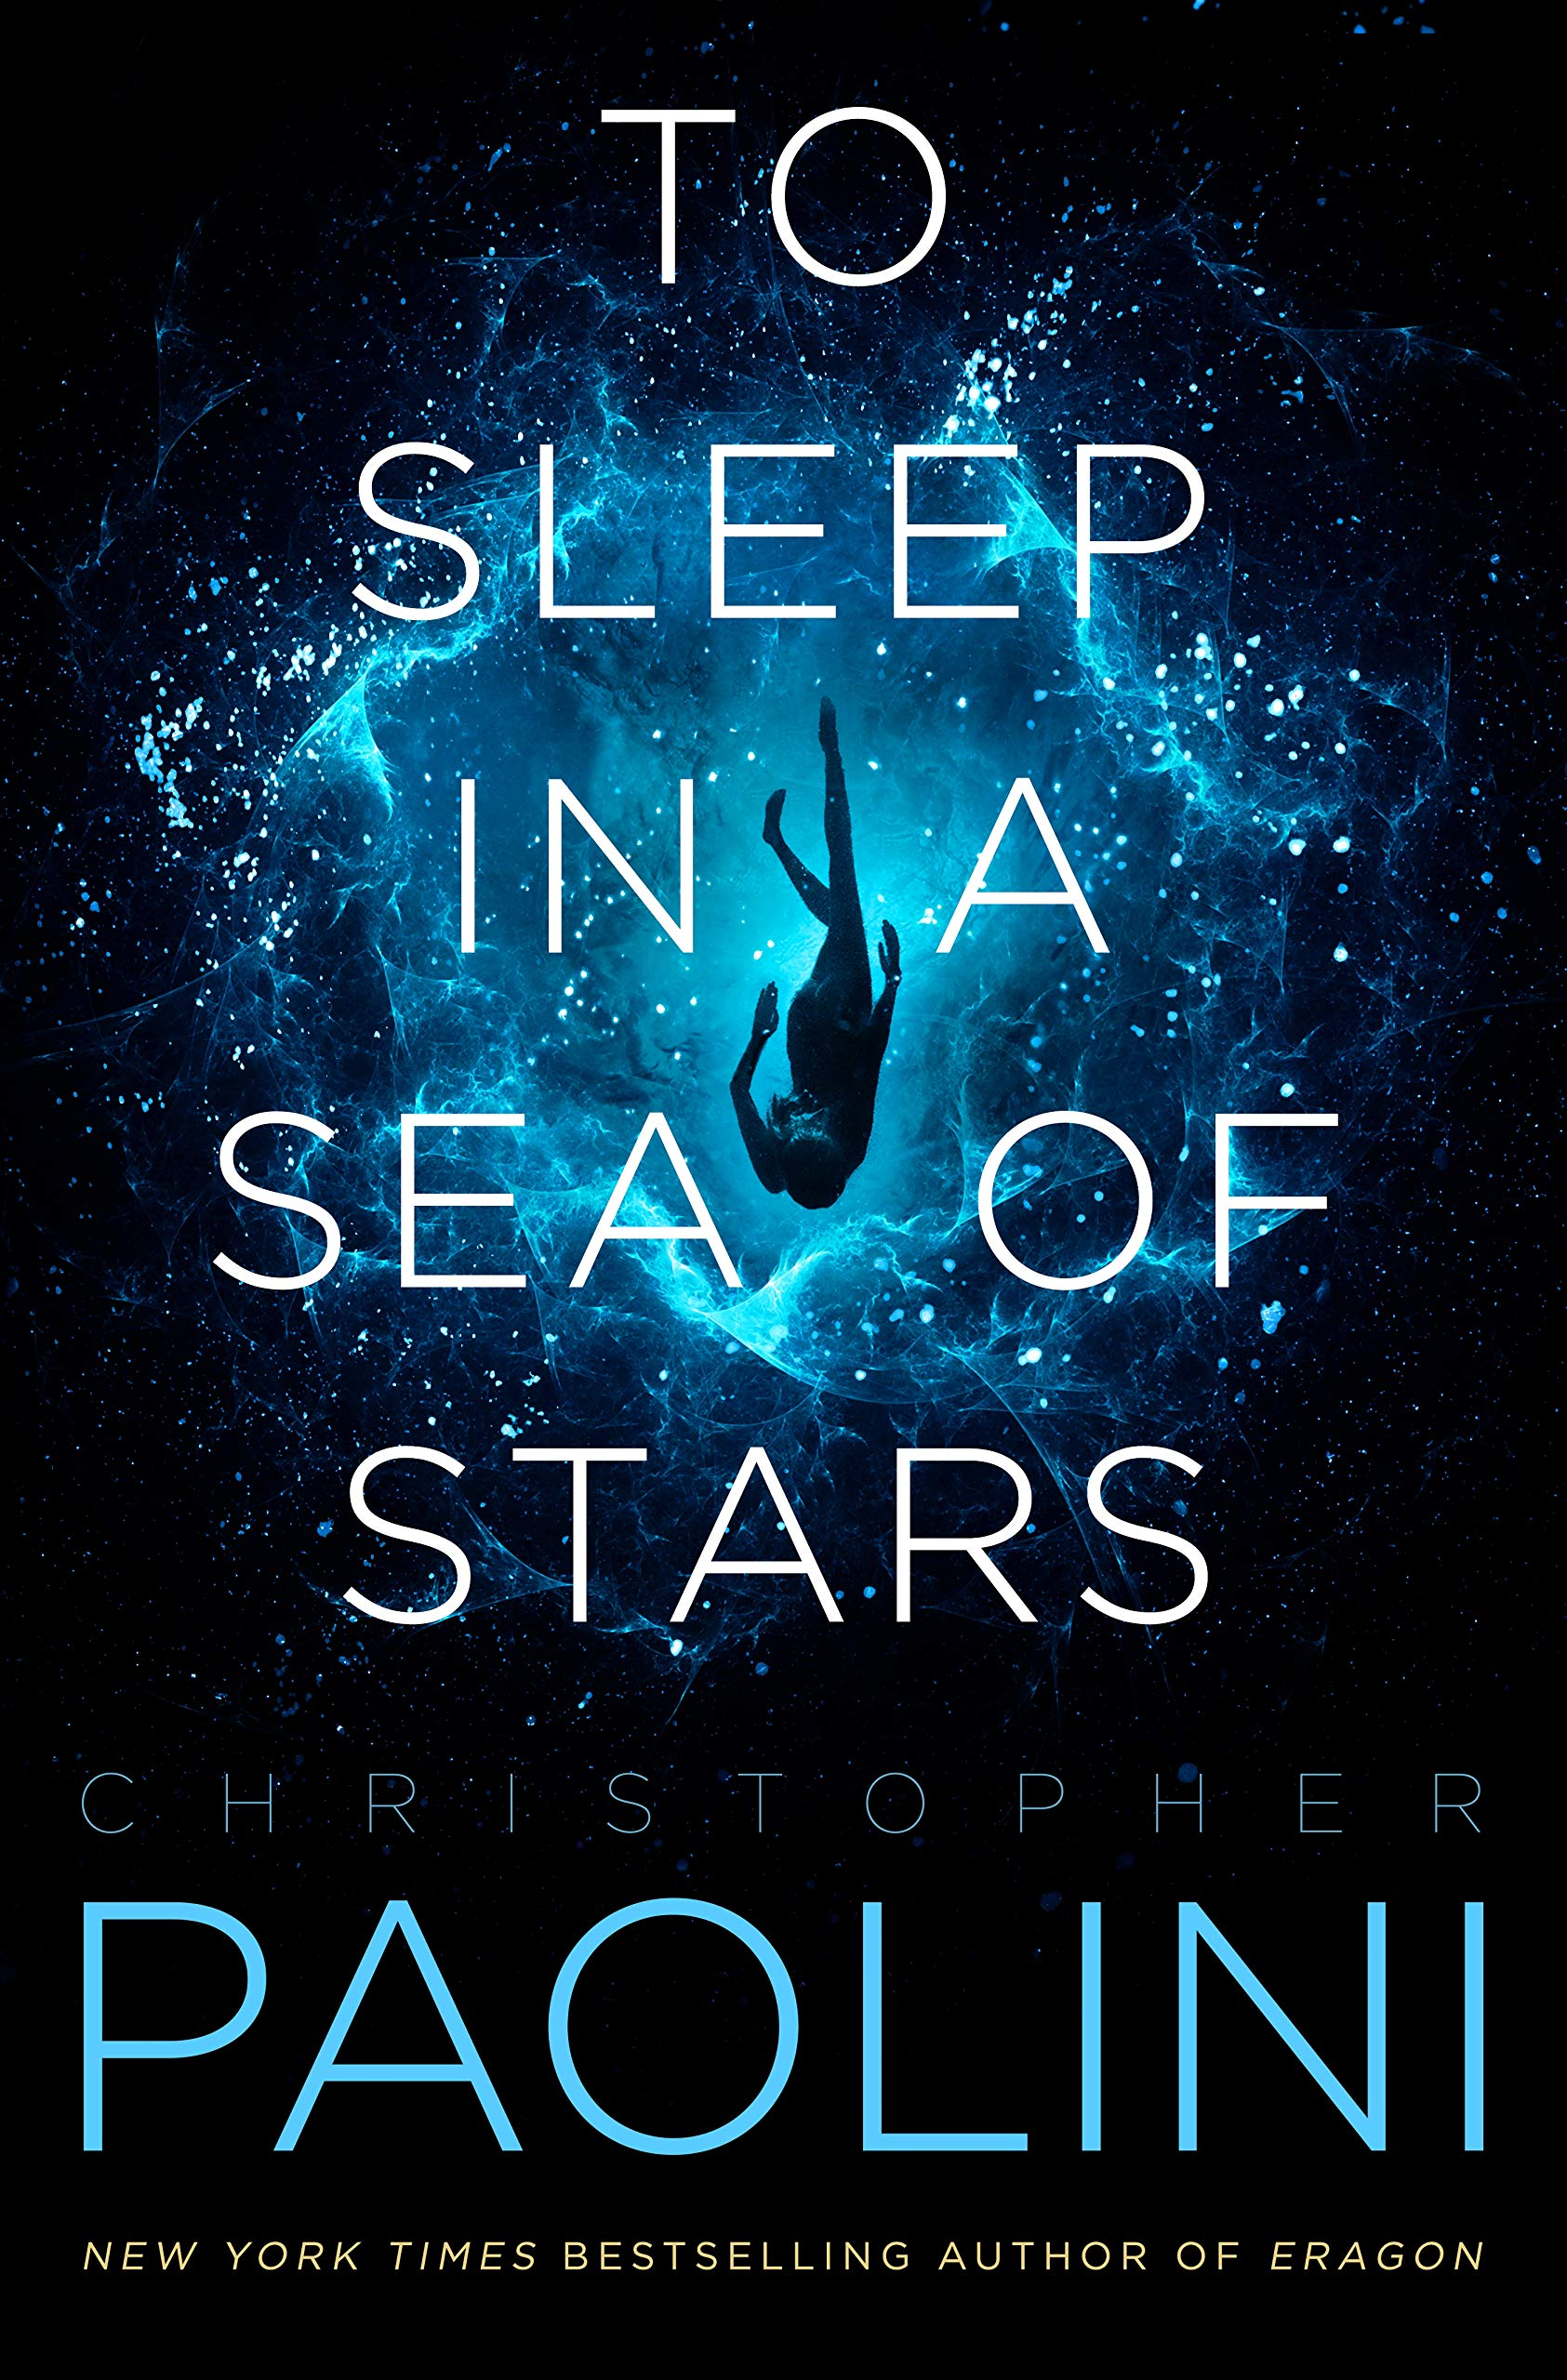 Amazon.com: To Sleep in a Sea of Stars (9781250762849): Paolini,  Christopher: Books